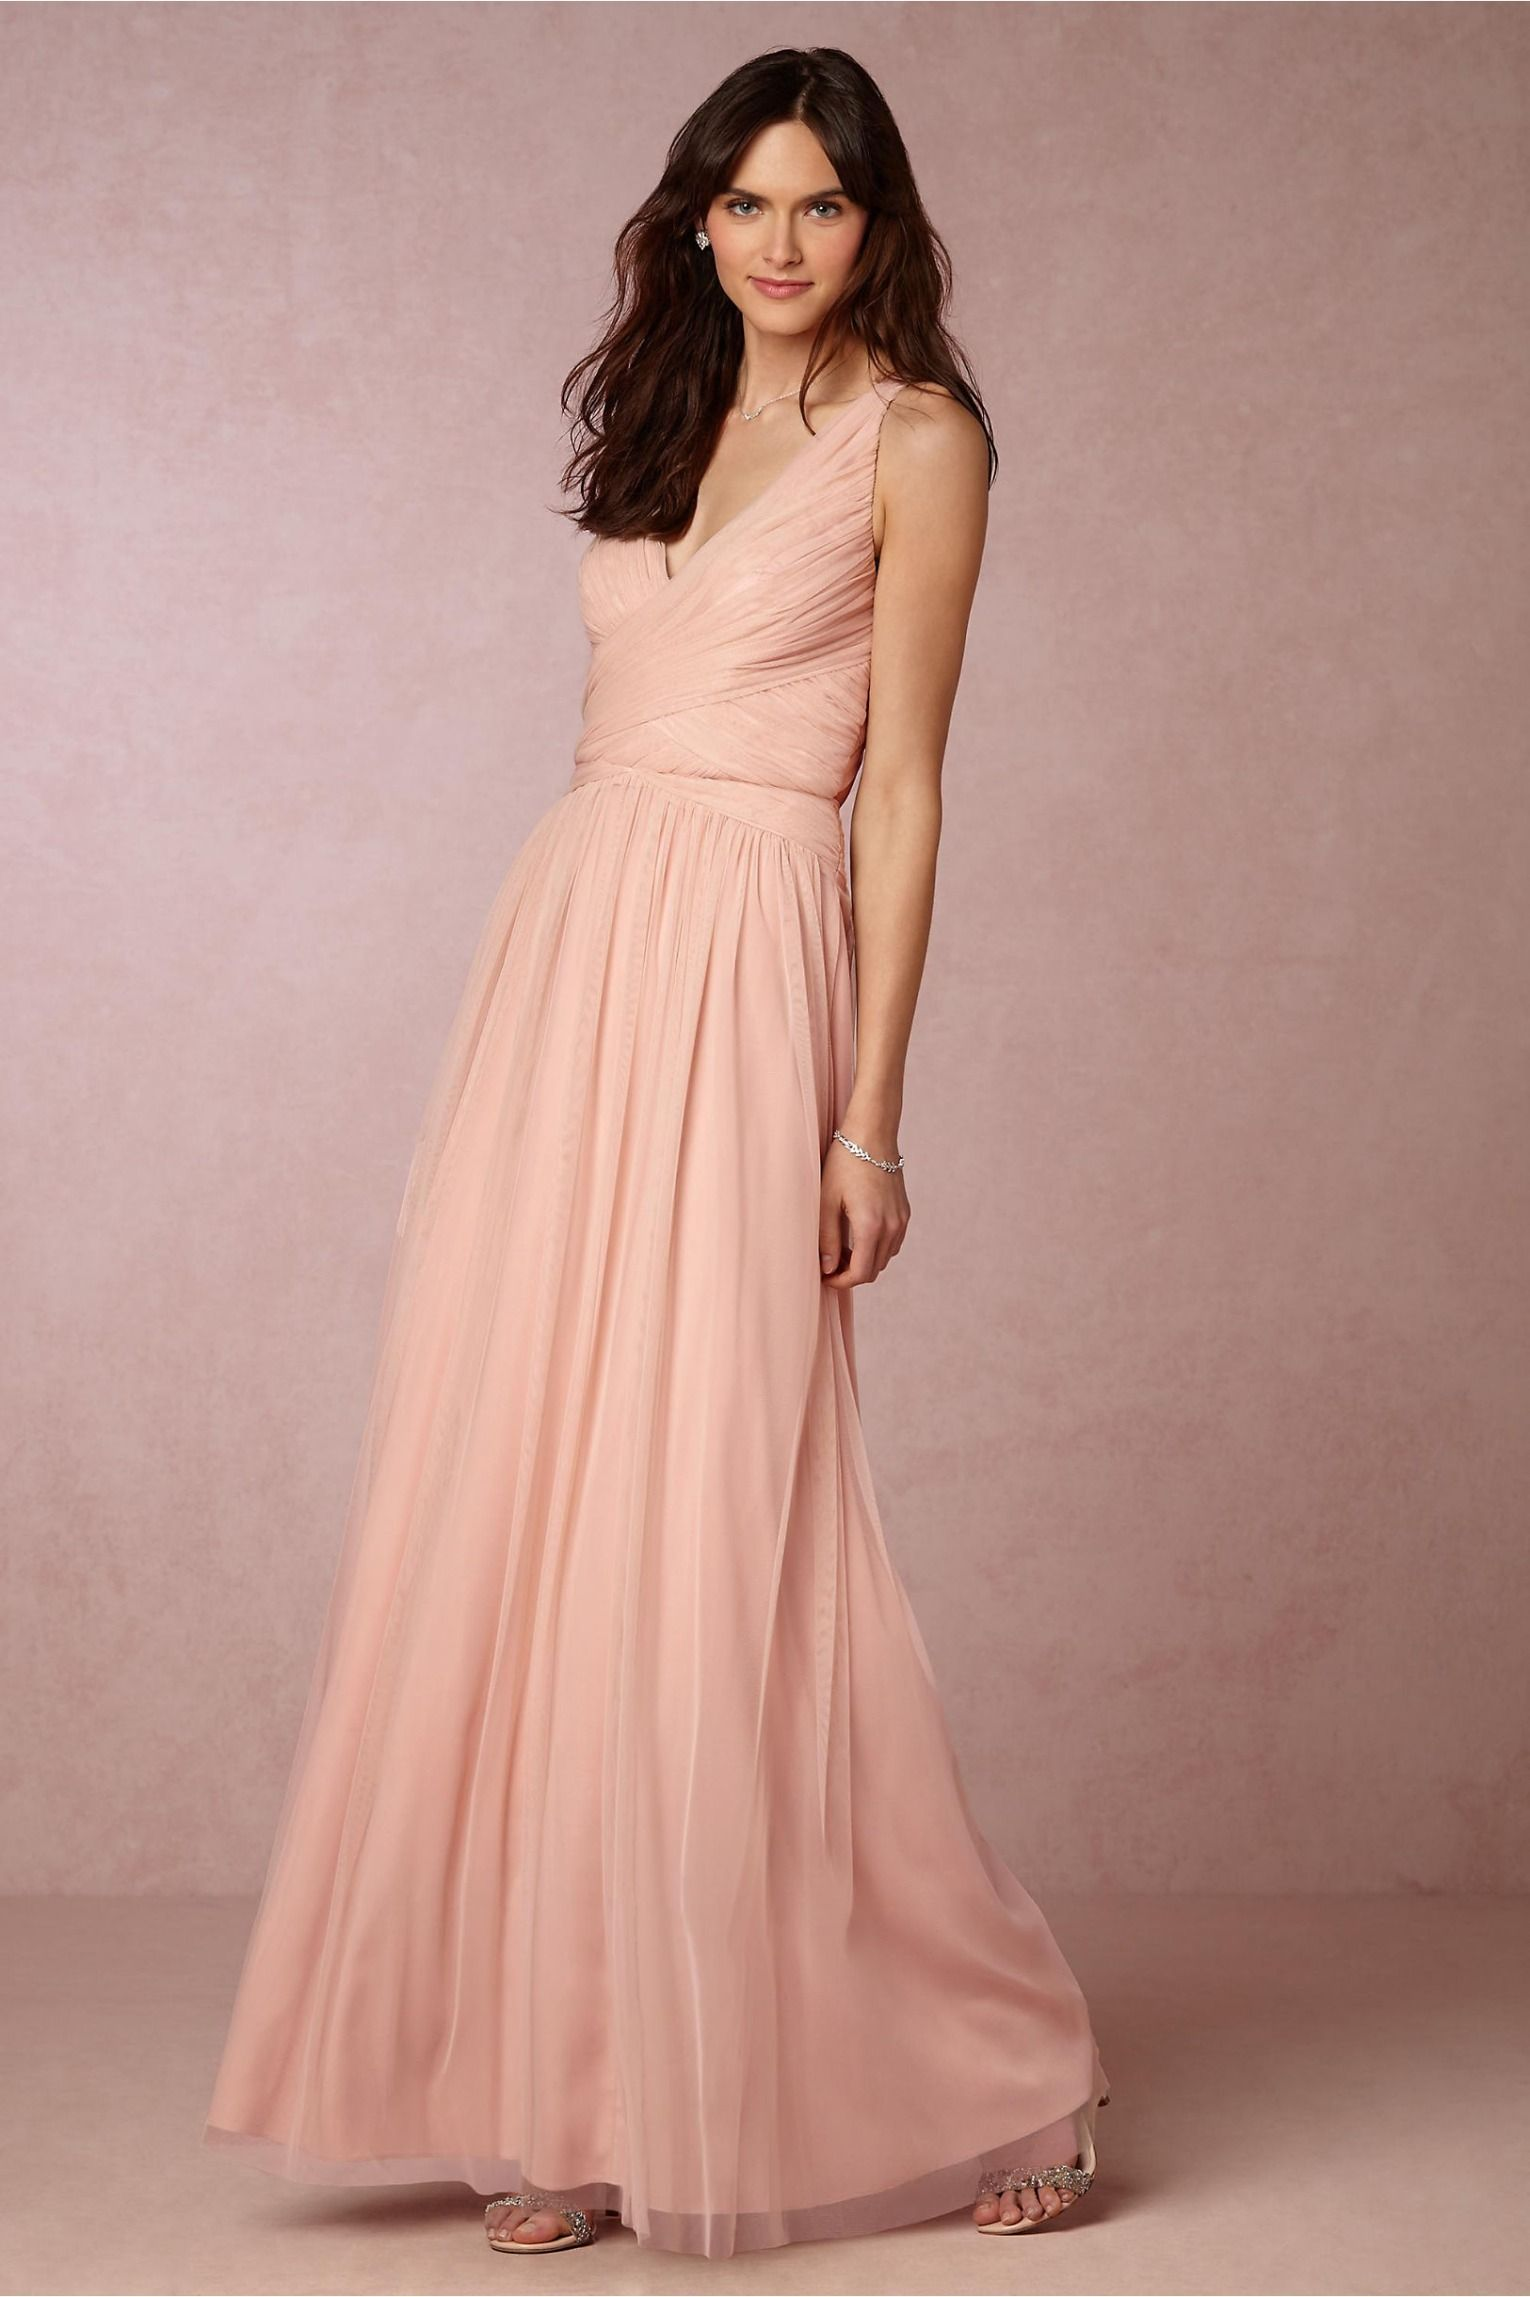 blush bridesmaid dress | Edith Dress in tape pink from BHLDN | aisle ...